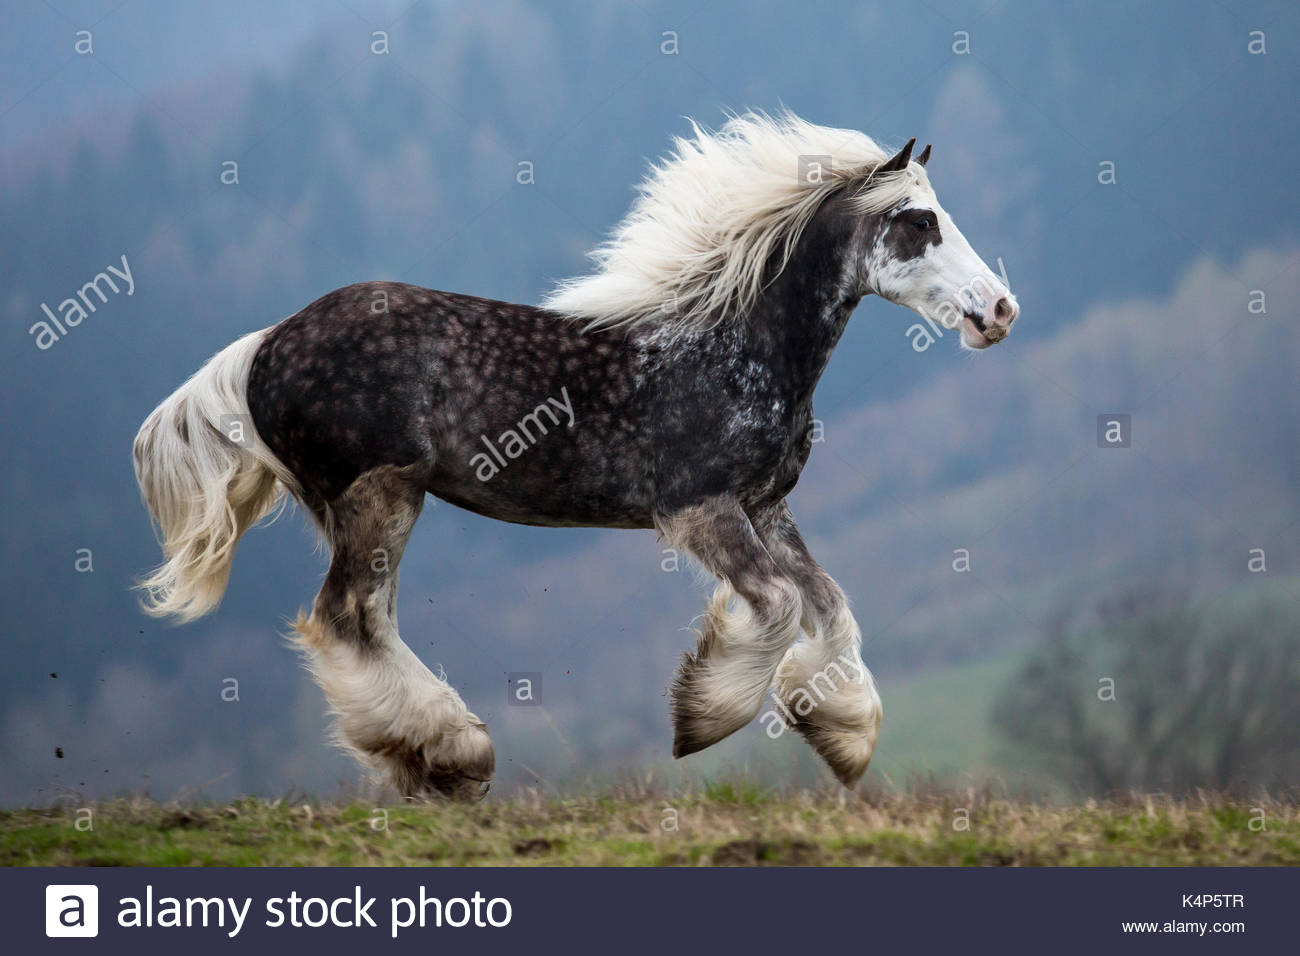 Silver black dapple gypsy horse cob banner filly - Stock Image